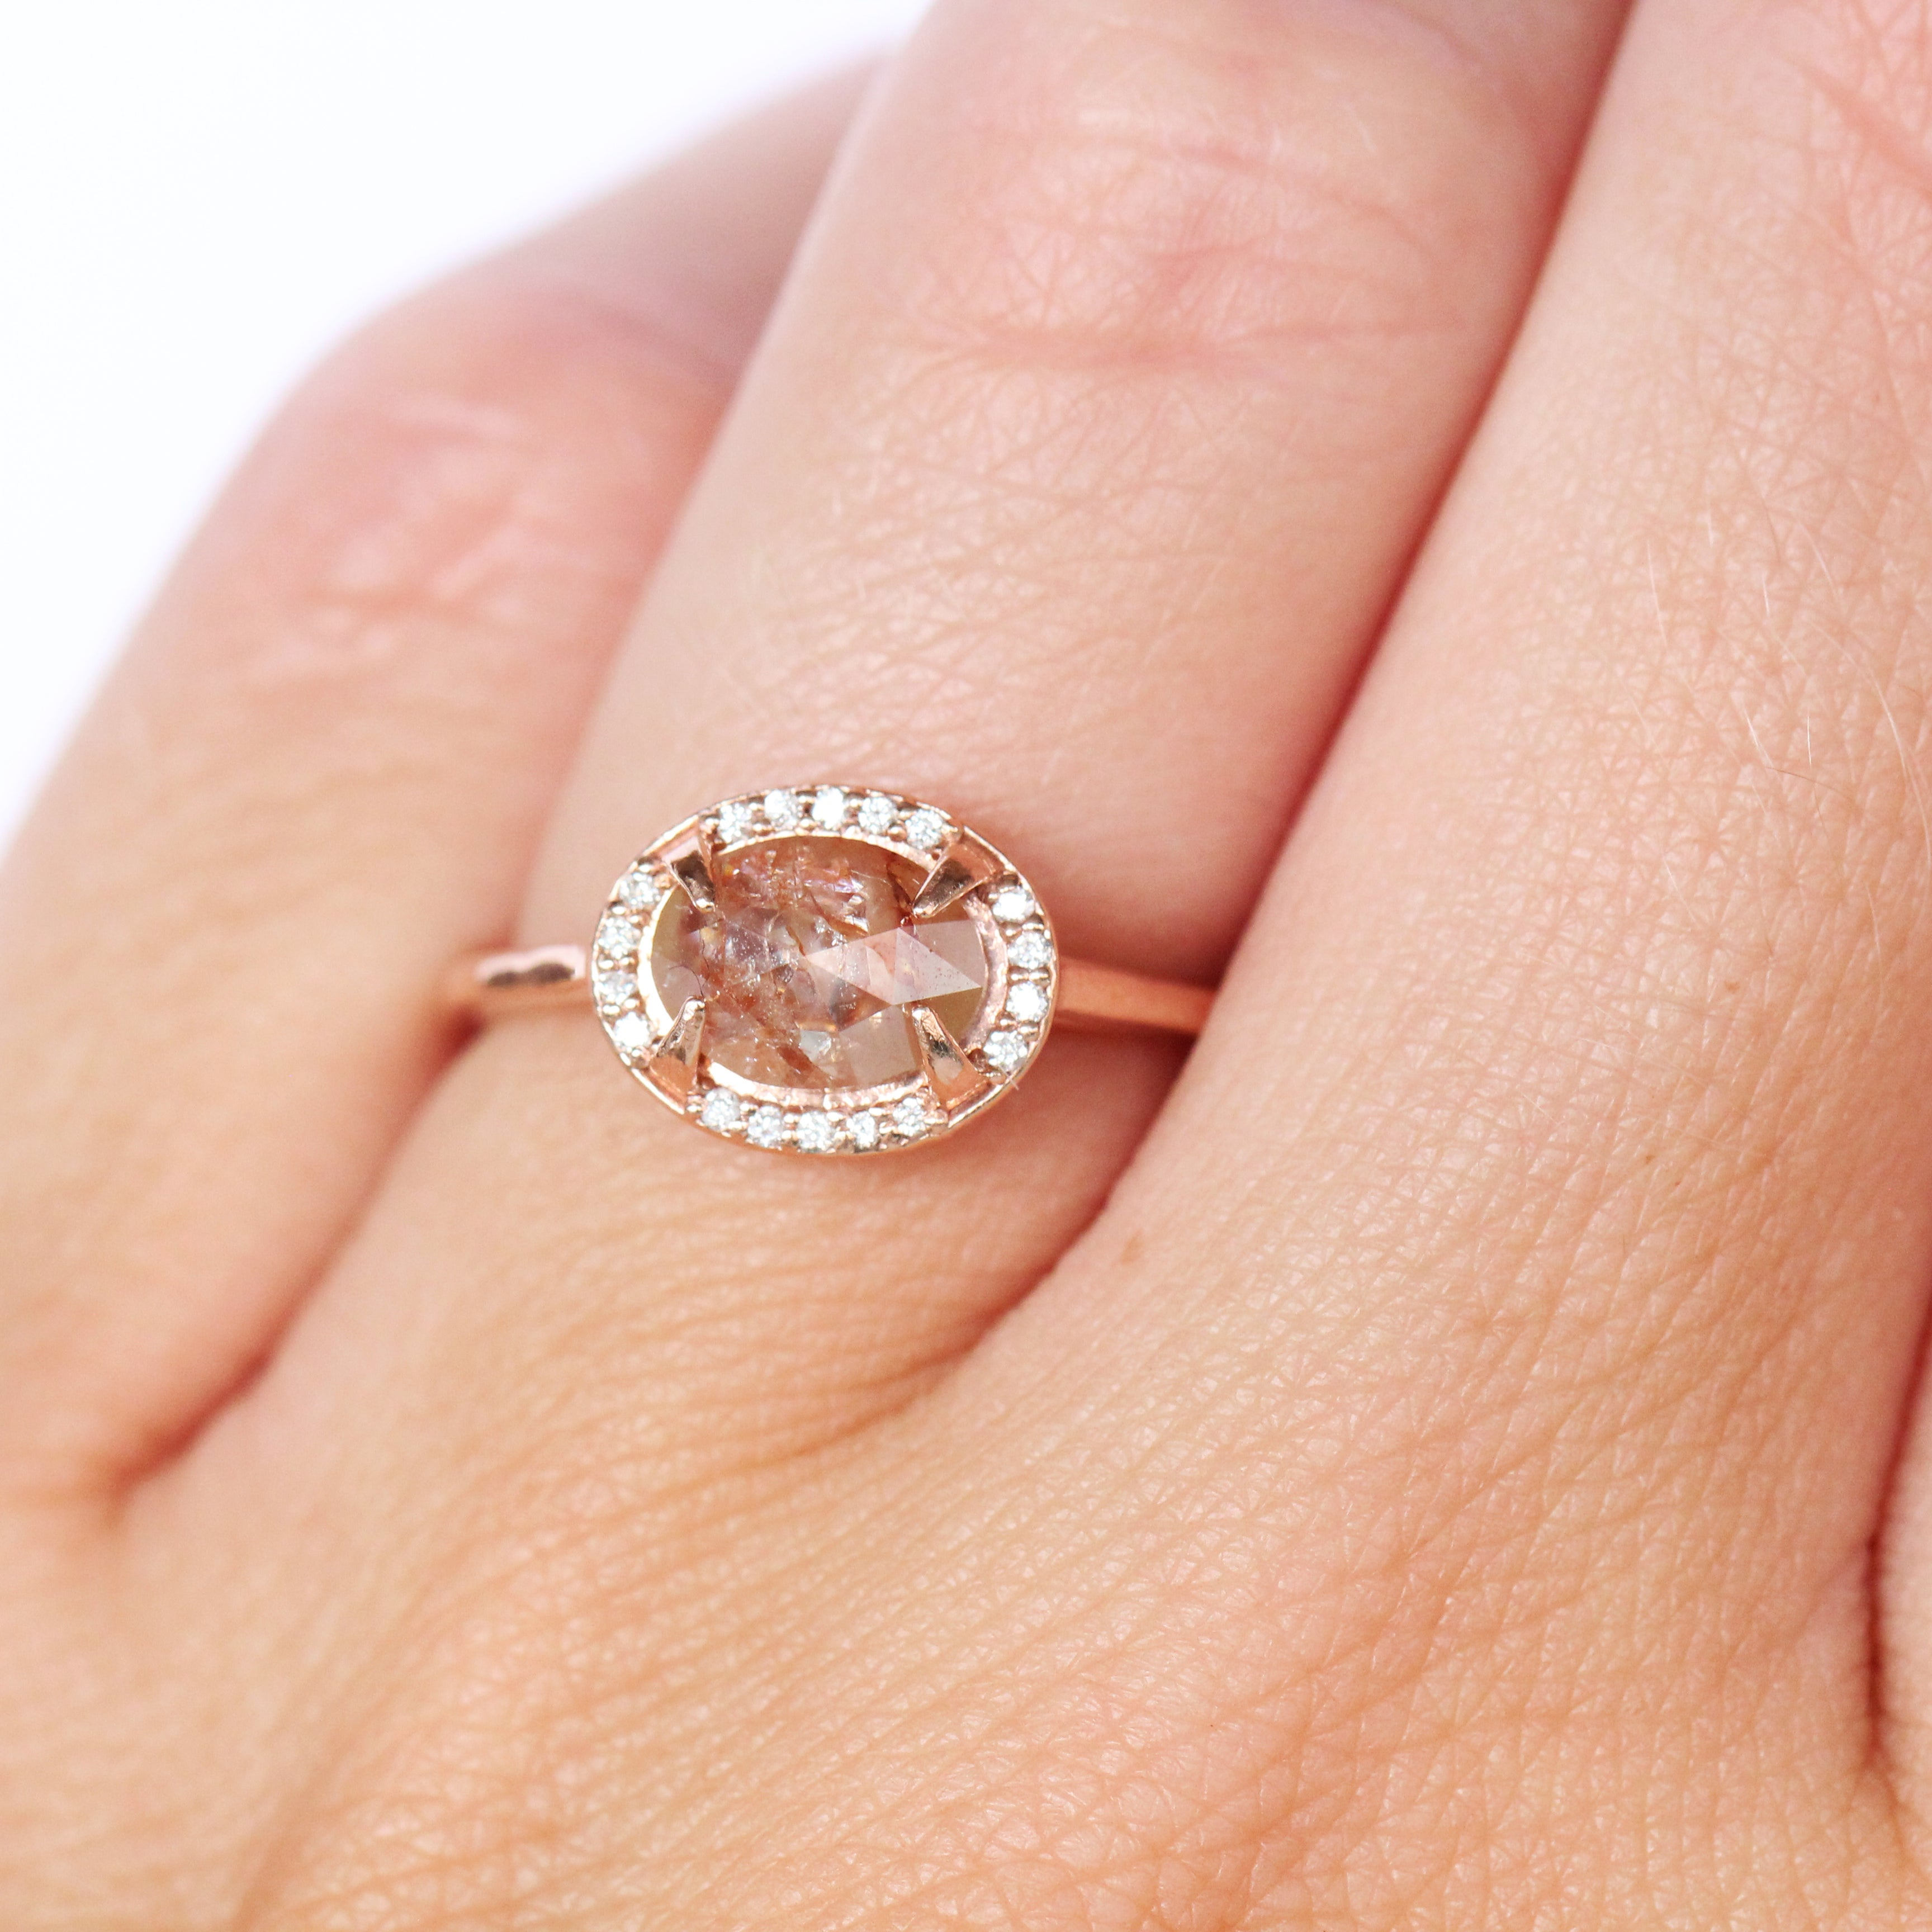 Kira Ring - Orange and Peach Diamond with Halo in 10k Rose Gold - Ready to Size and Ship - Celestial Diamonds ® by Midwinter Co.